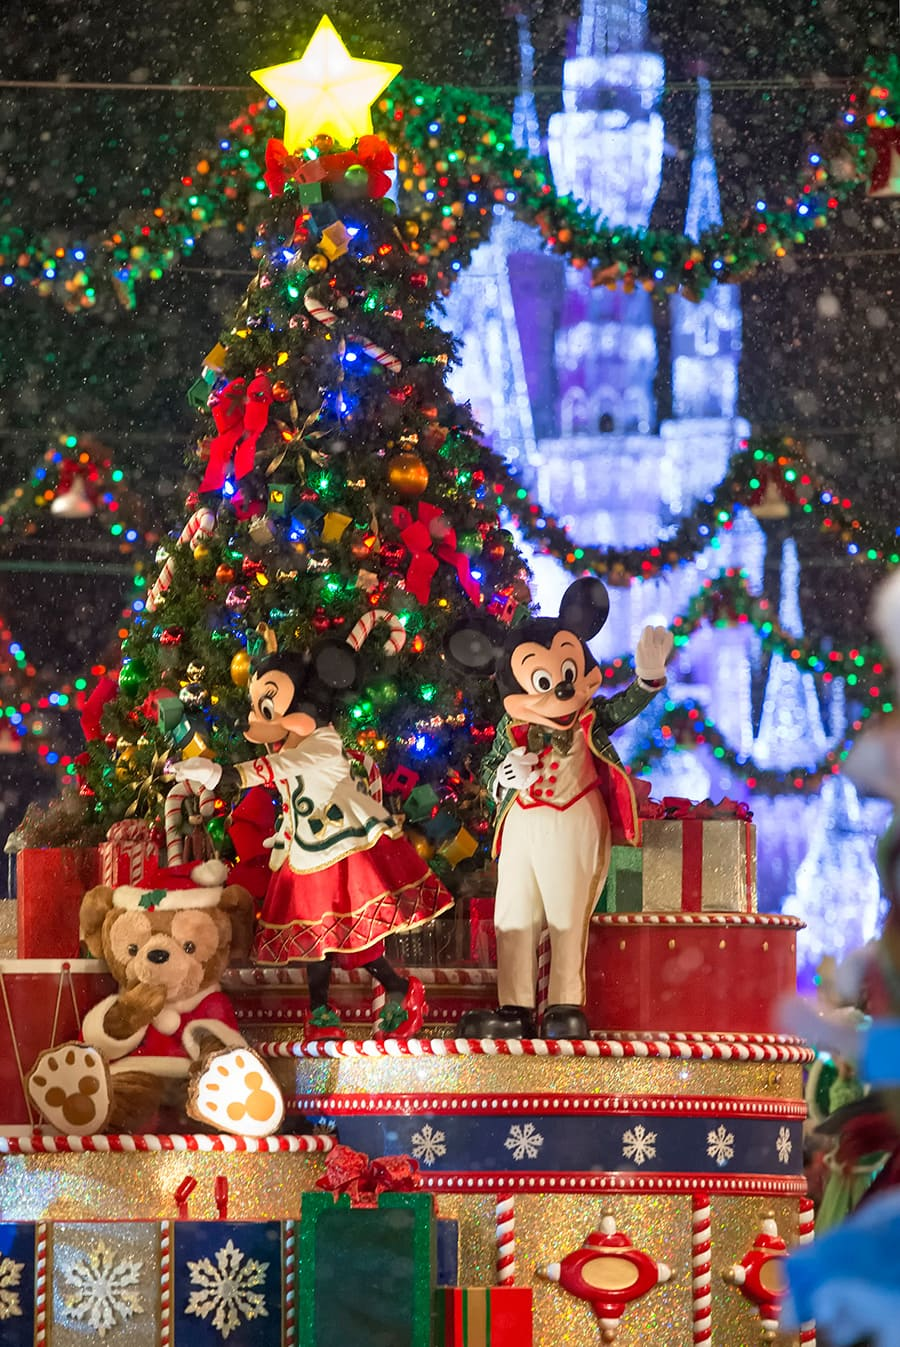 rewq654321 dates for 2015 mickeys very merry christmas - When Is Christmas In 2015